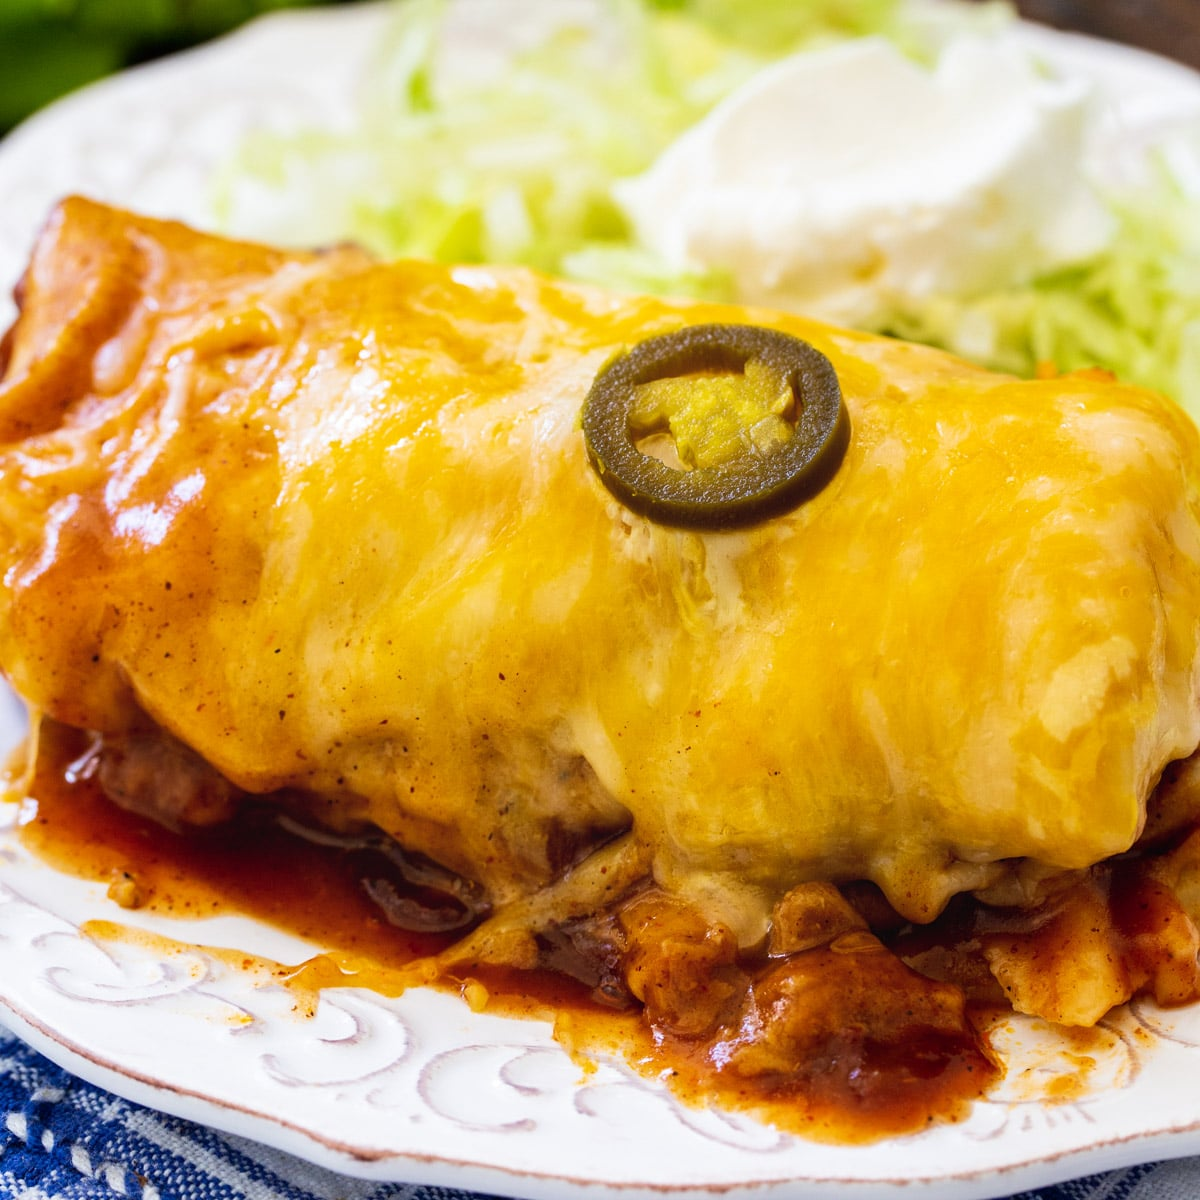 3-Ingredient Smothered Burrito on a plate.